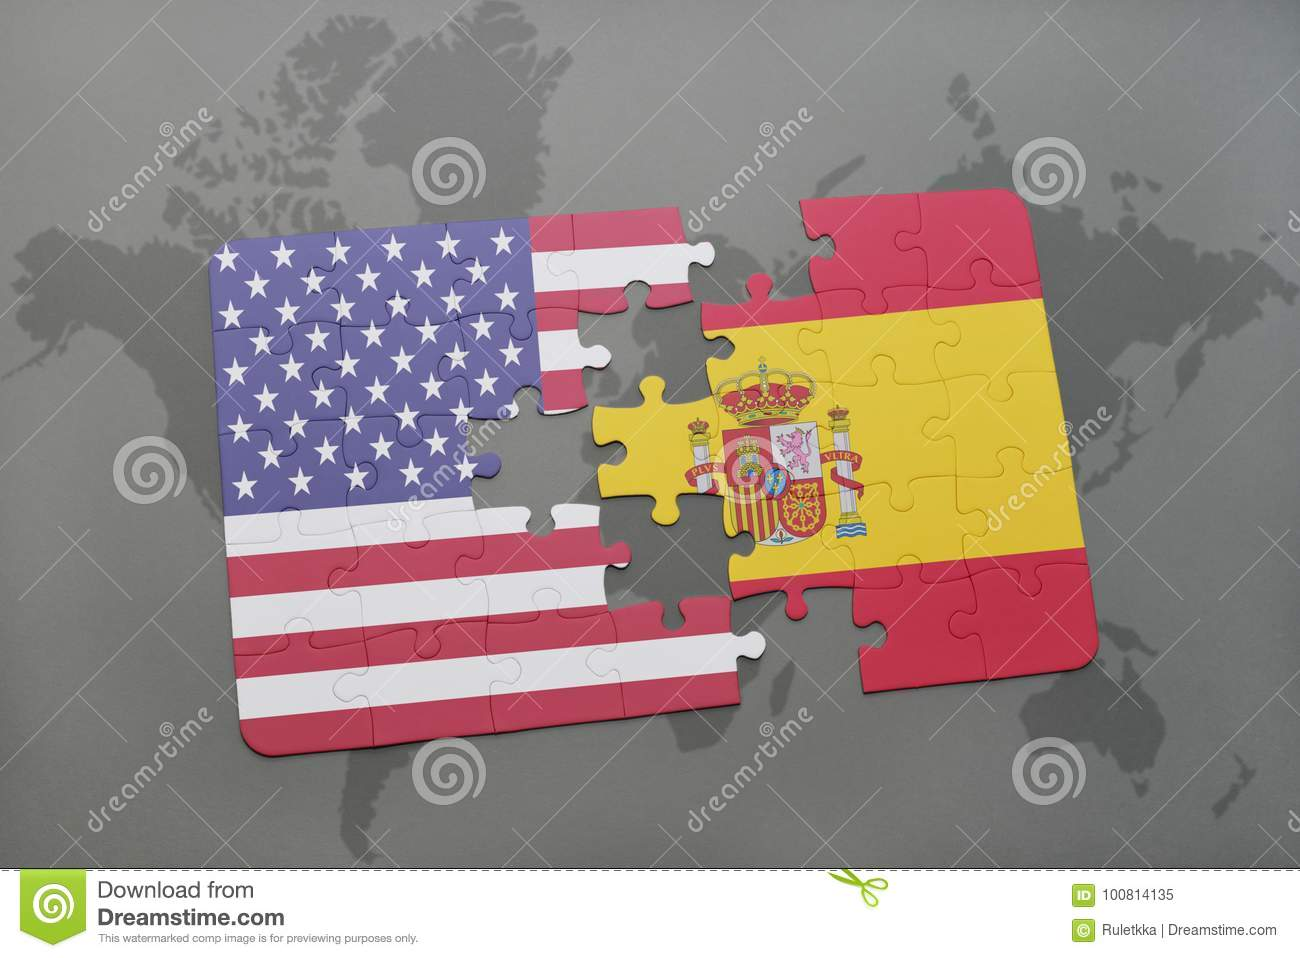 Puzzle With The National Flag Of United States Of America And Spain